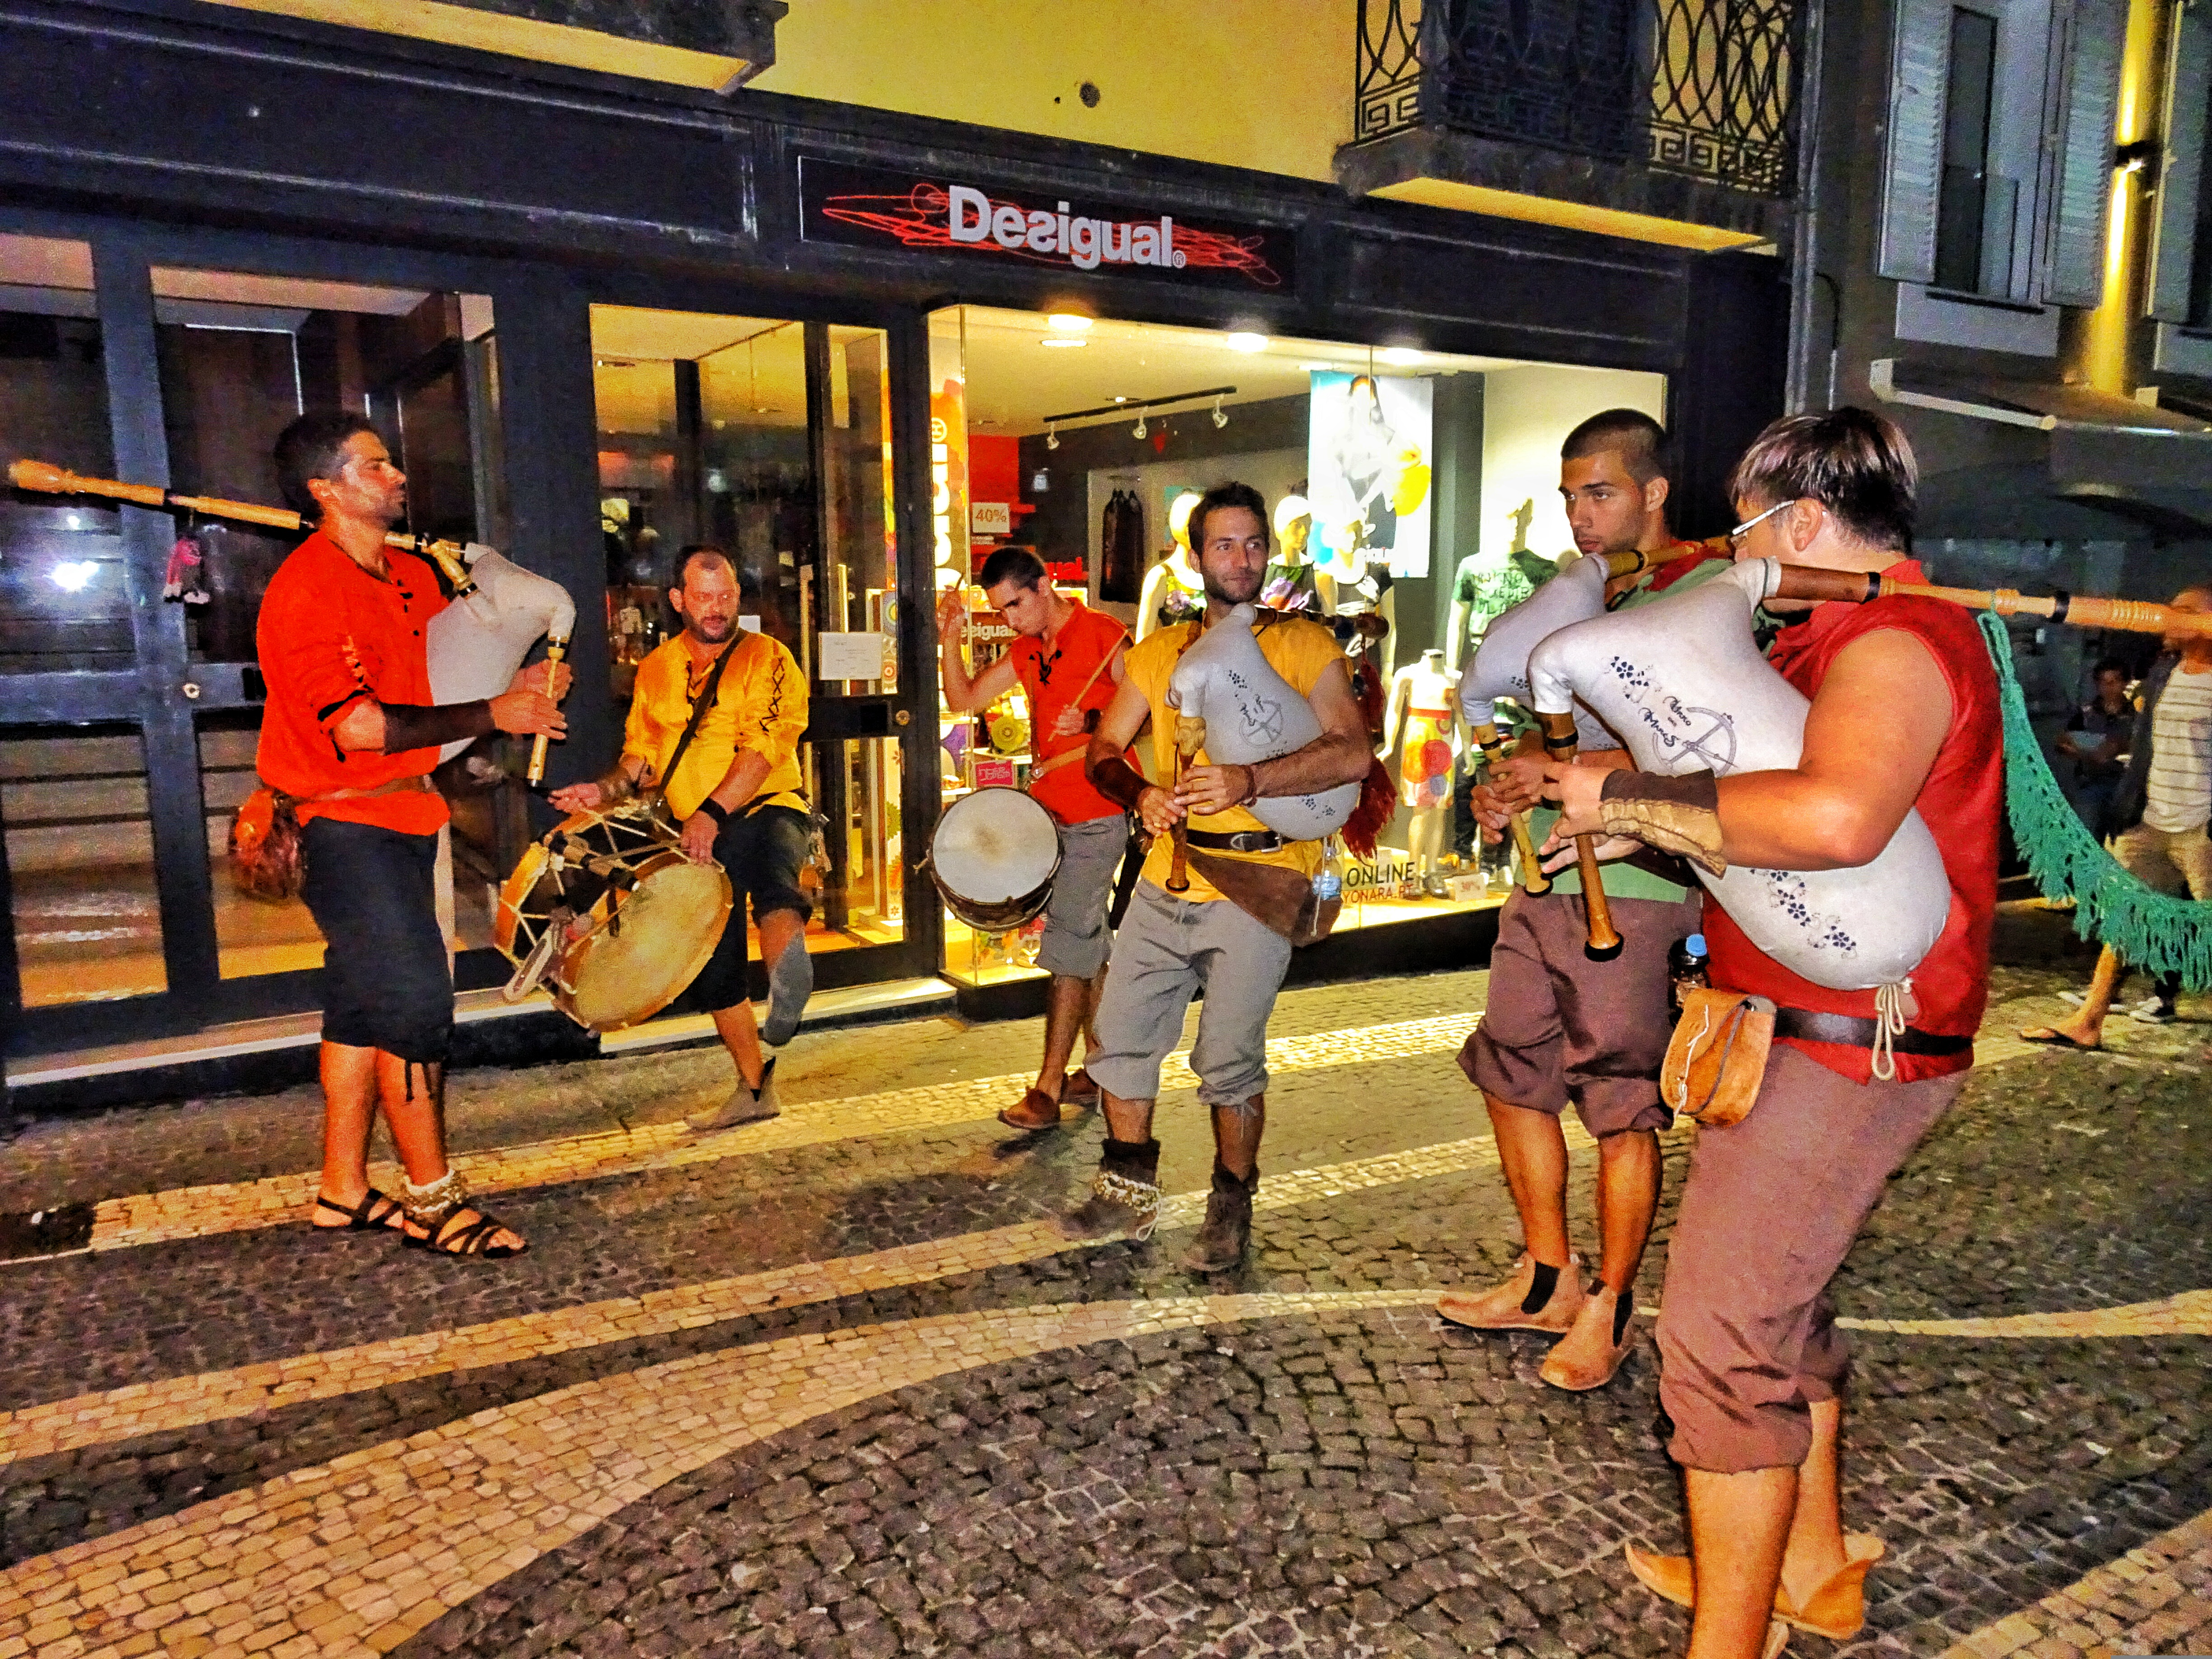 ponta delgada girls Chat with girls in ponta delgada, portugal chat, flirt and meet women in your local area today and start making new friends in ponta delgada at badoo.